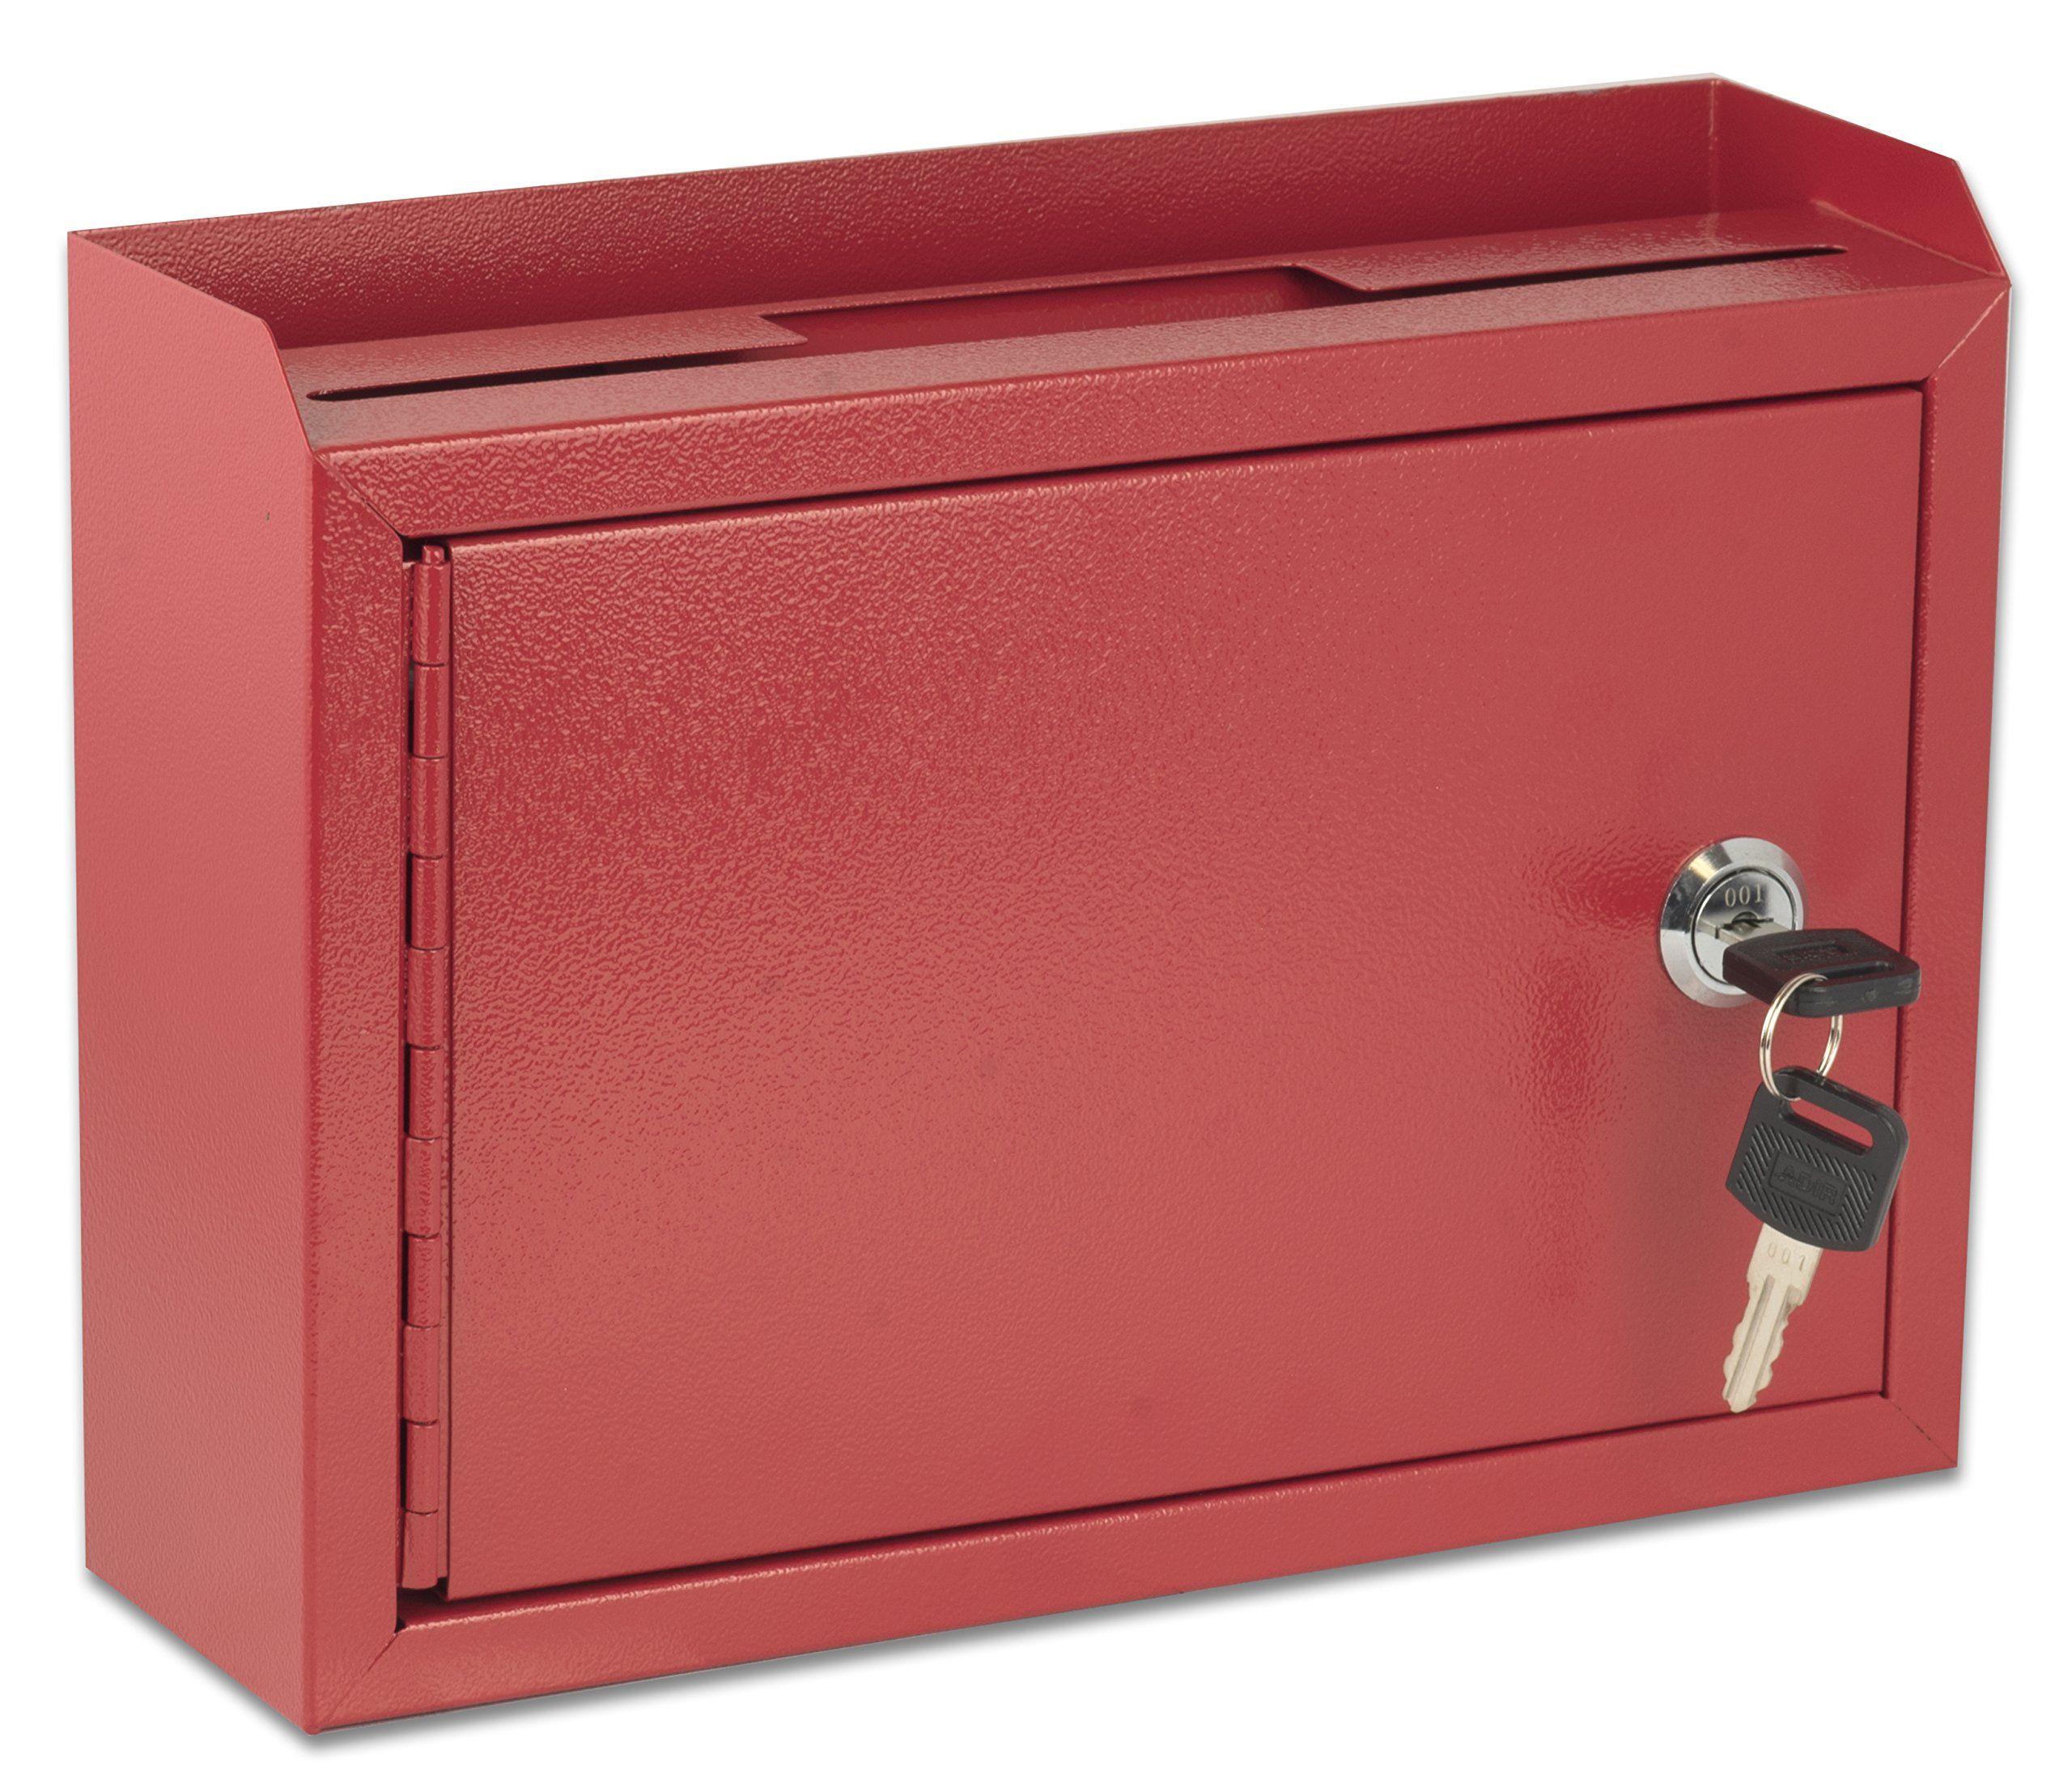 AdirOffice Multi Purpose Wall Mountable Suggestion Box, 9.75'' x 7'' x 3'' - Red by Adir